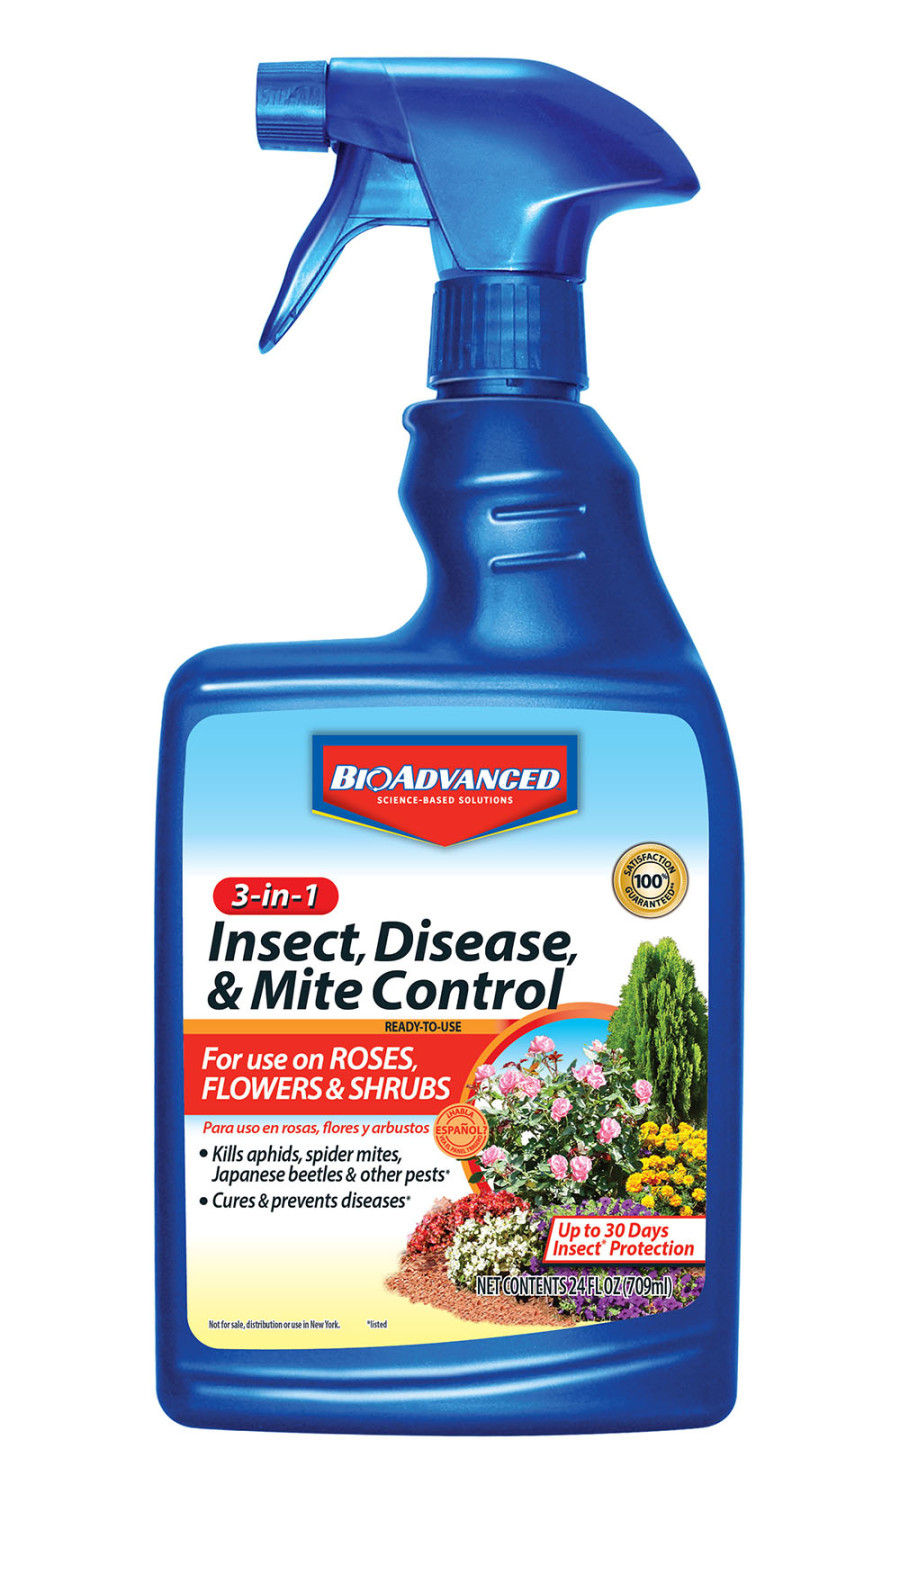 BioAdvanced 3-in-1 Insect, Disease & Mite Control Imidacloprid Ready to Use 12ea/24 fl oz